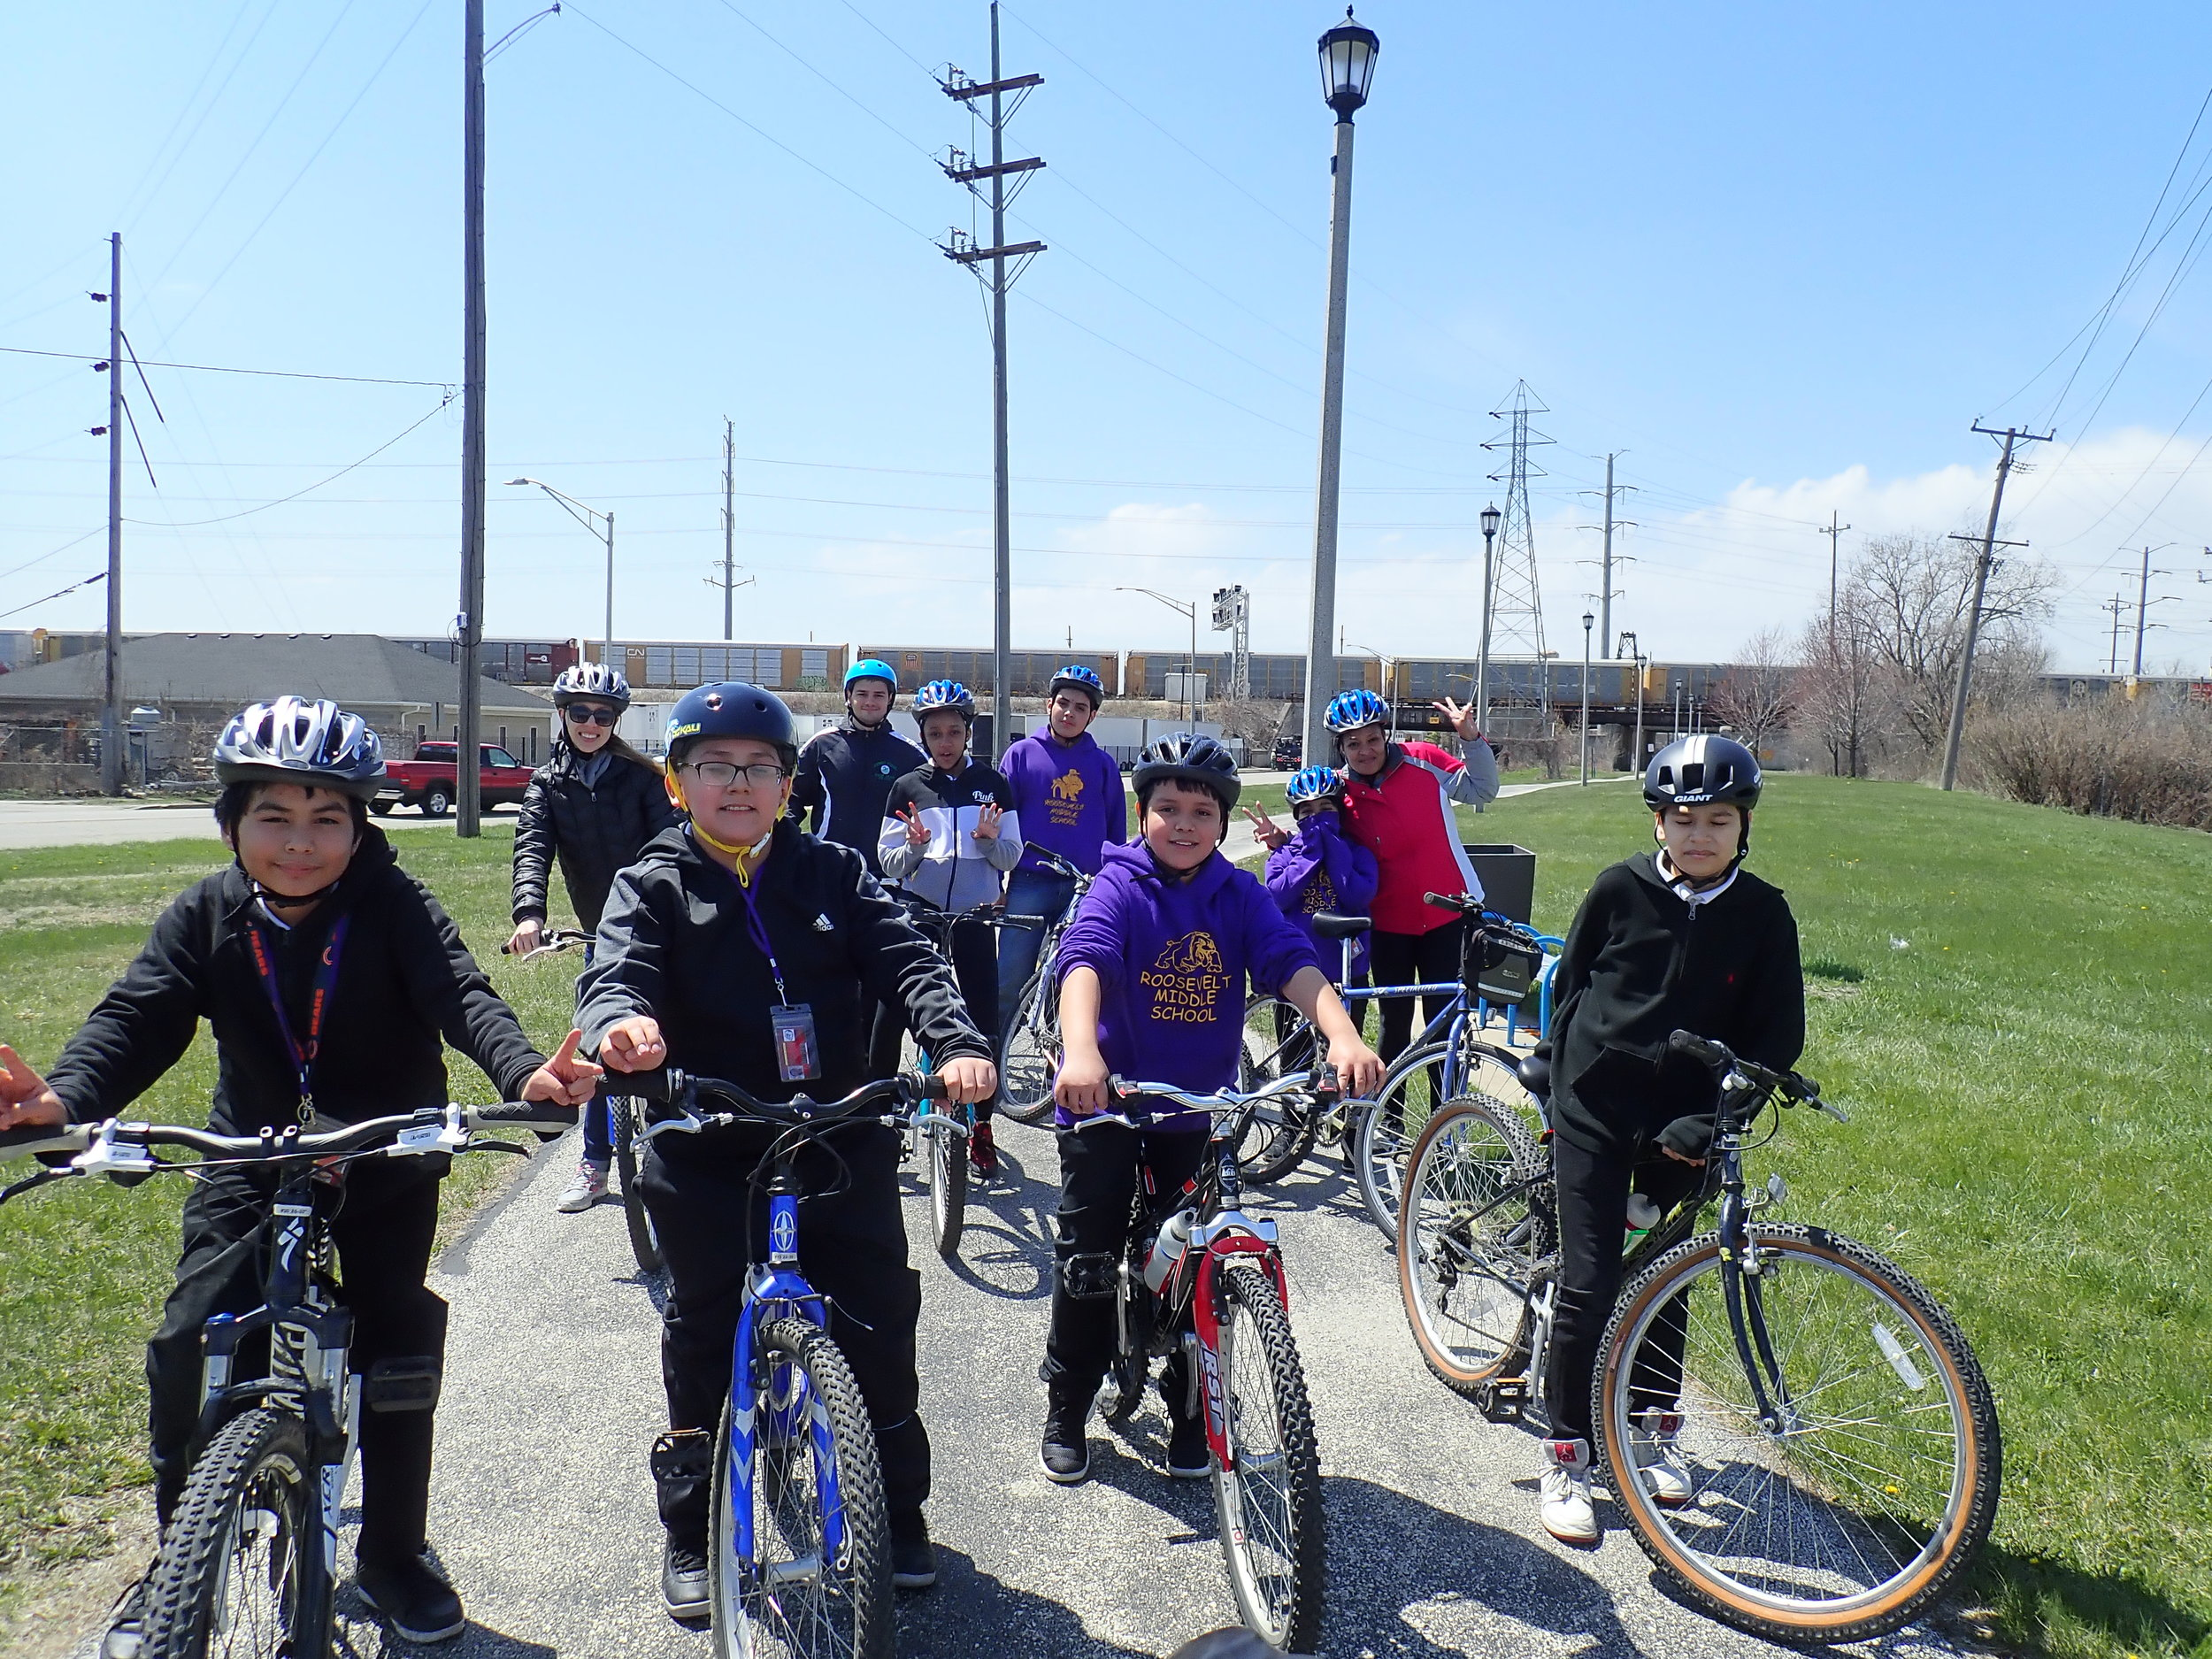 Chicago Voyagers_group on ride_2018.jpg